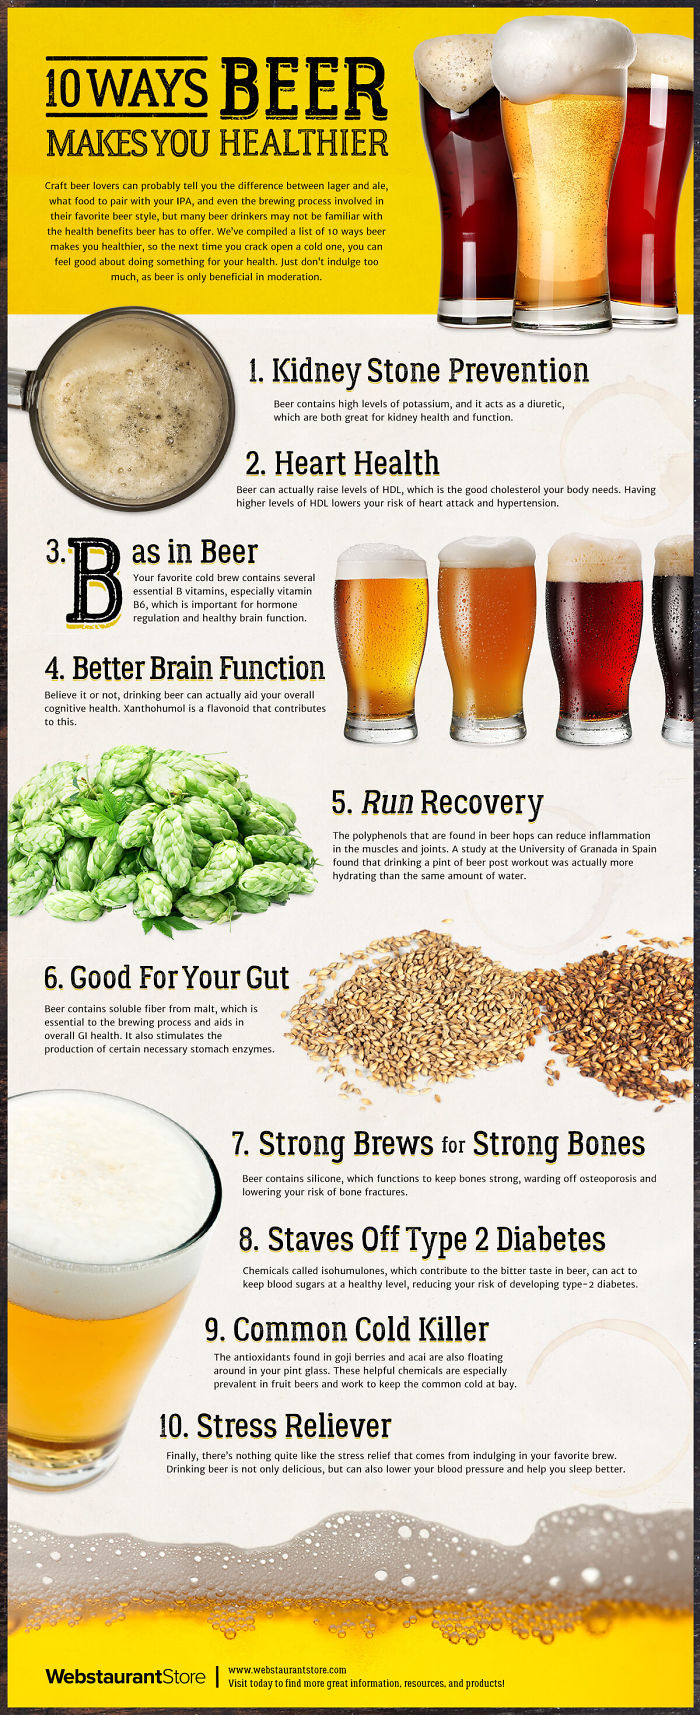 10 Ways Beer Makes You Healthier [infographic]